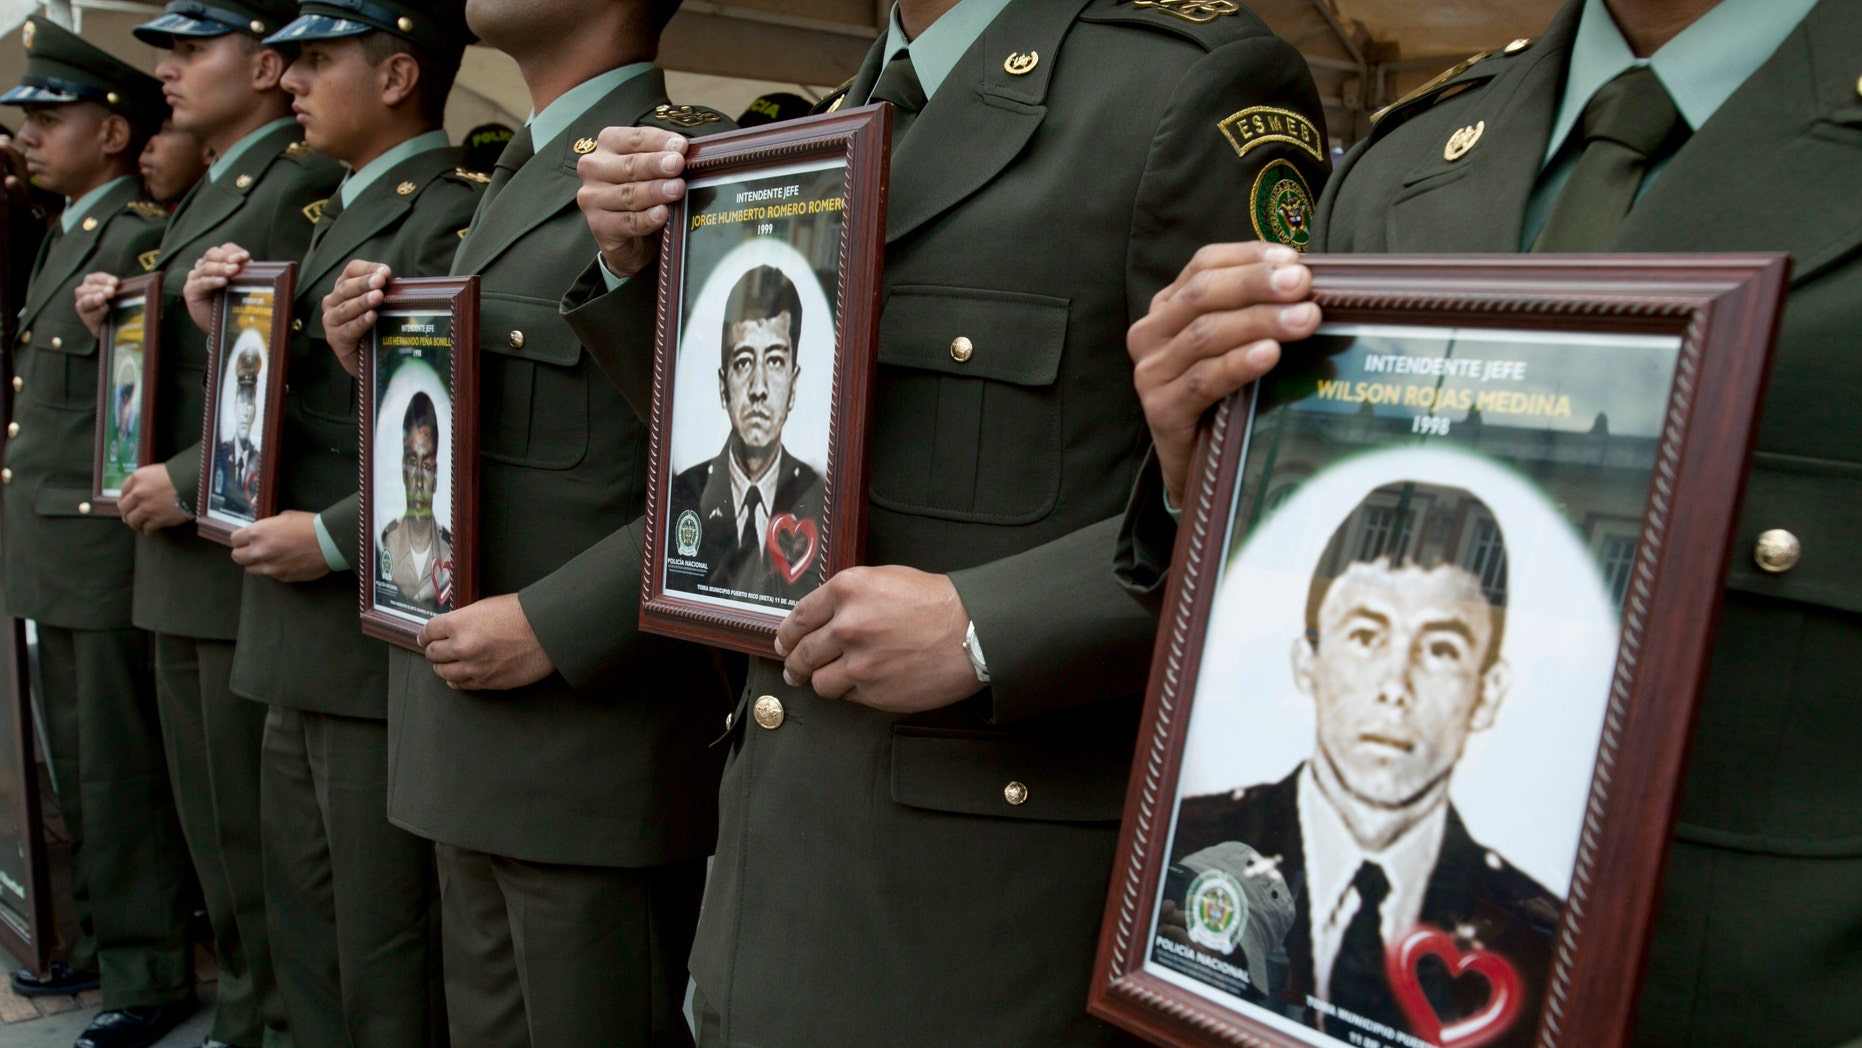 Police officers hold photographs of fellow officers, who were kidnapped by rebels of the Revolutionary Armed Forces of Colombia (FARC), in the main square during a protest to demand his freedom in Bogota, Colombia, Thursday Feb. 23, 2012. (AP Photo/Fernando Vergara)